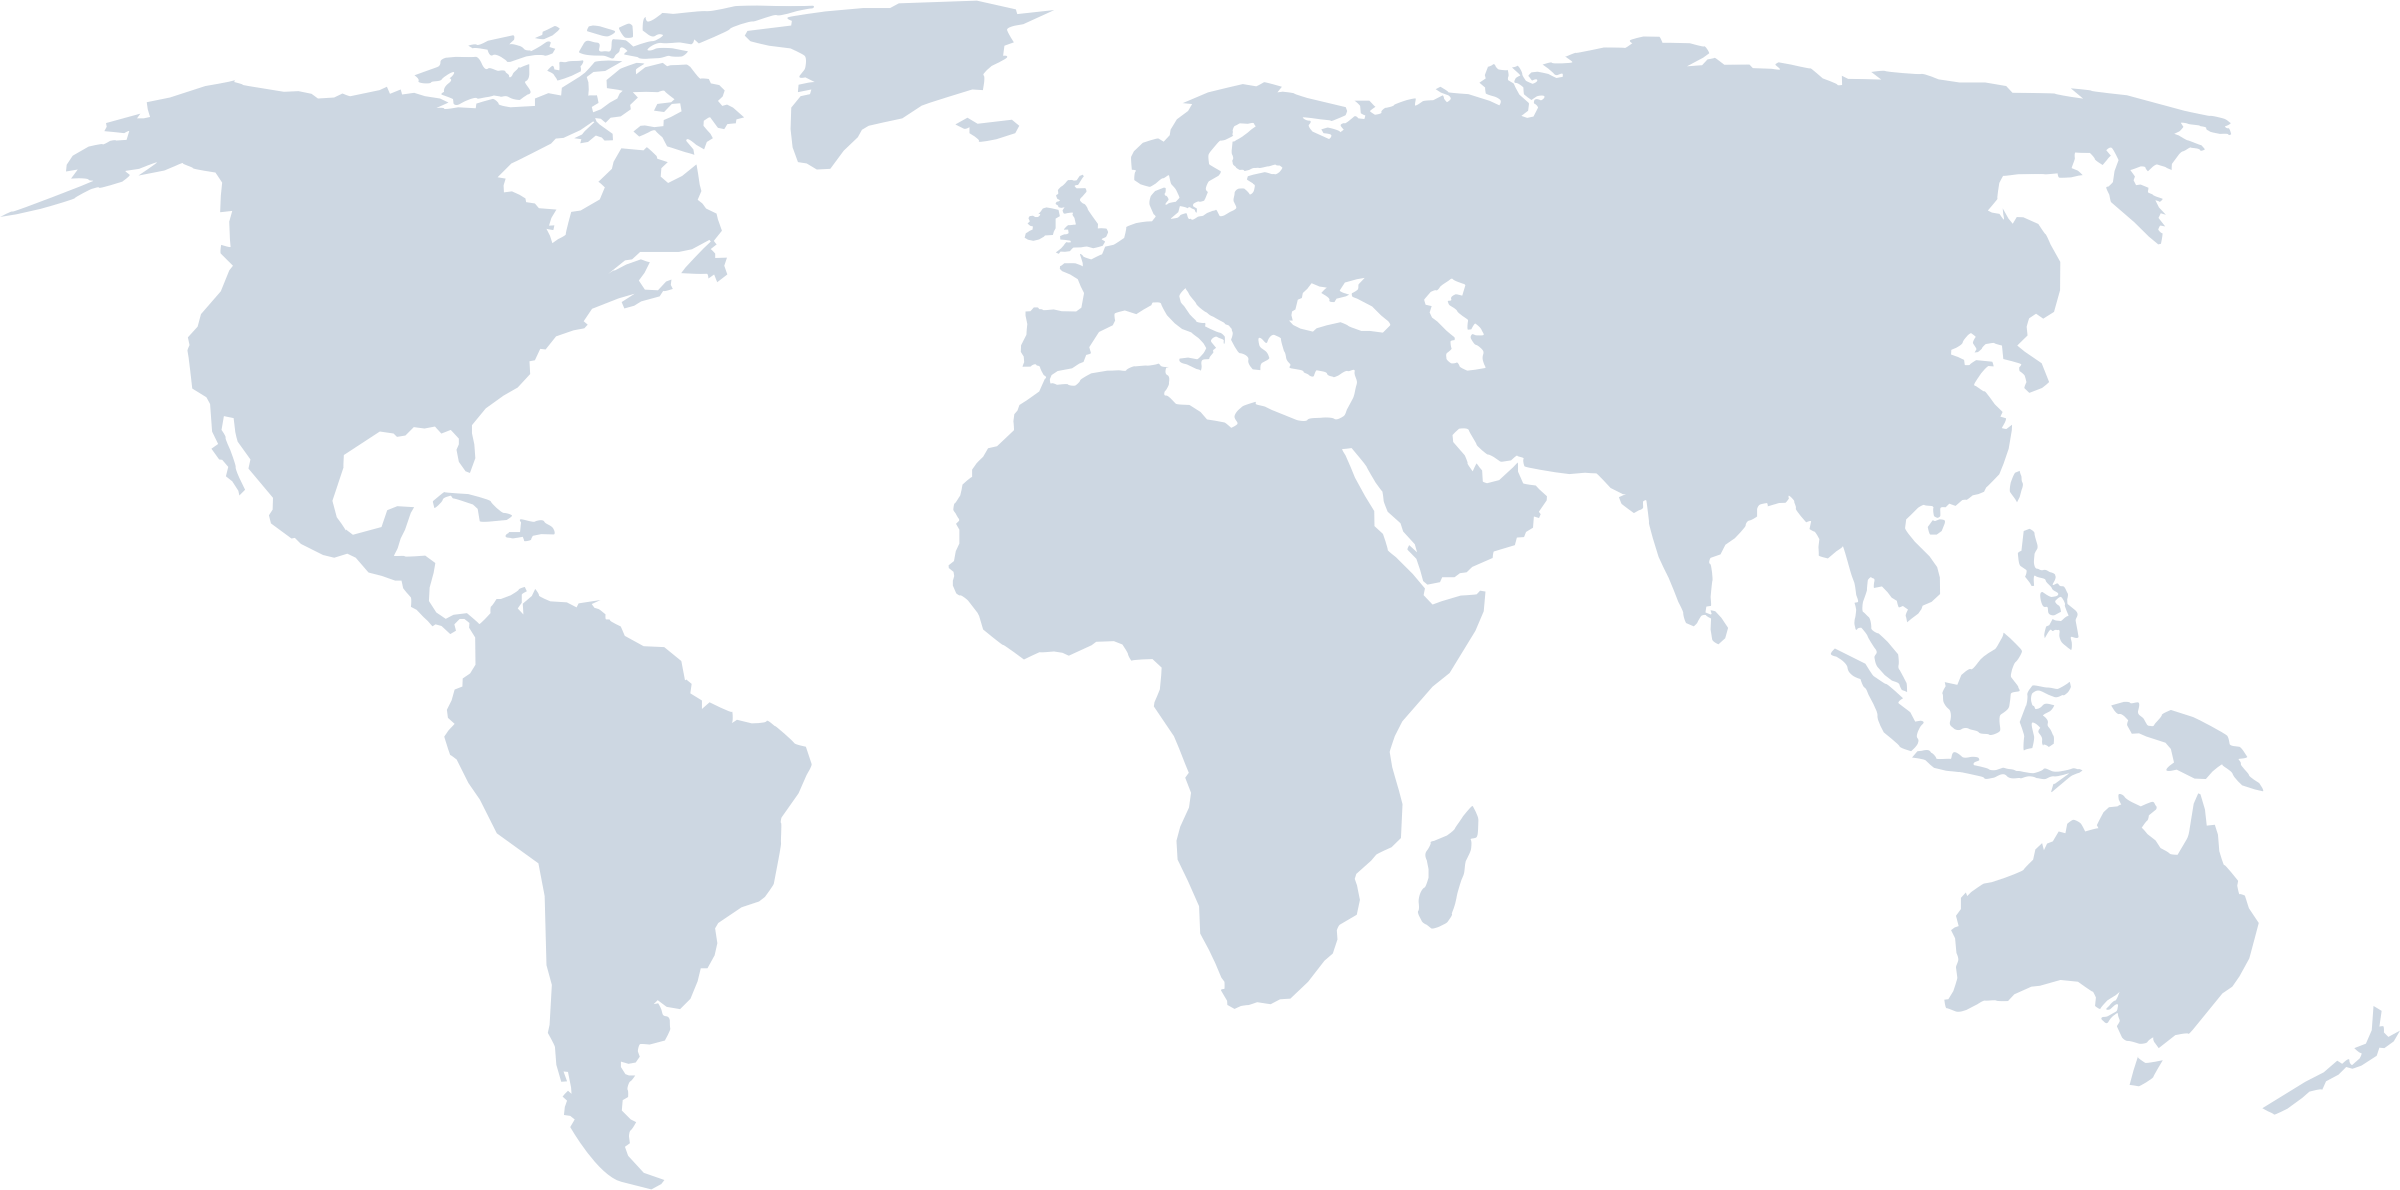 World map png image. Images free download